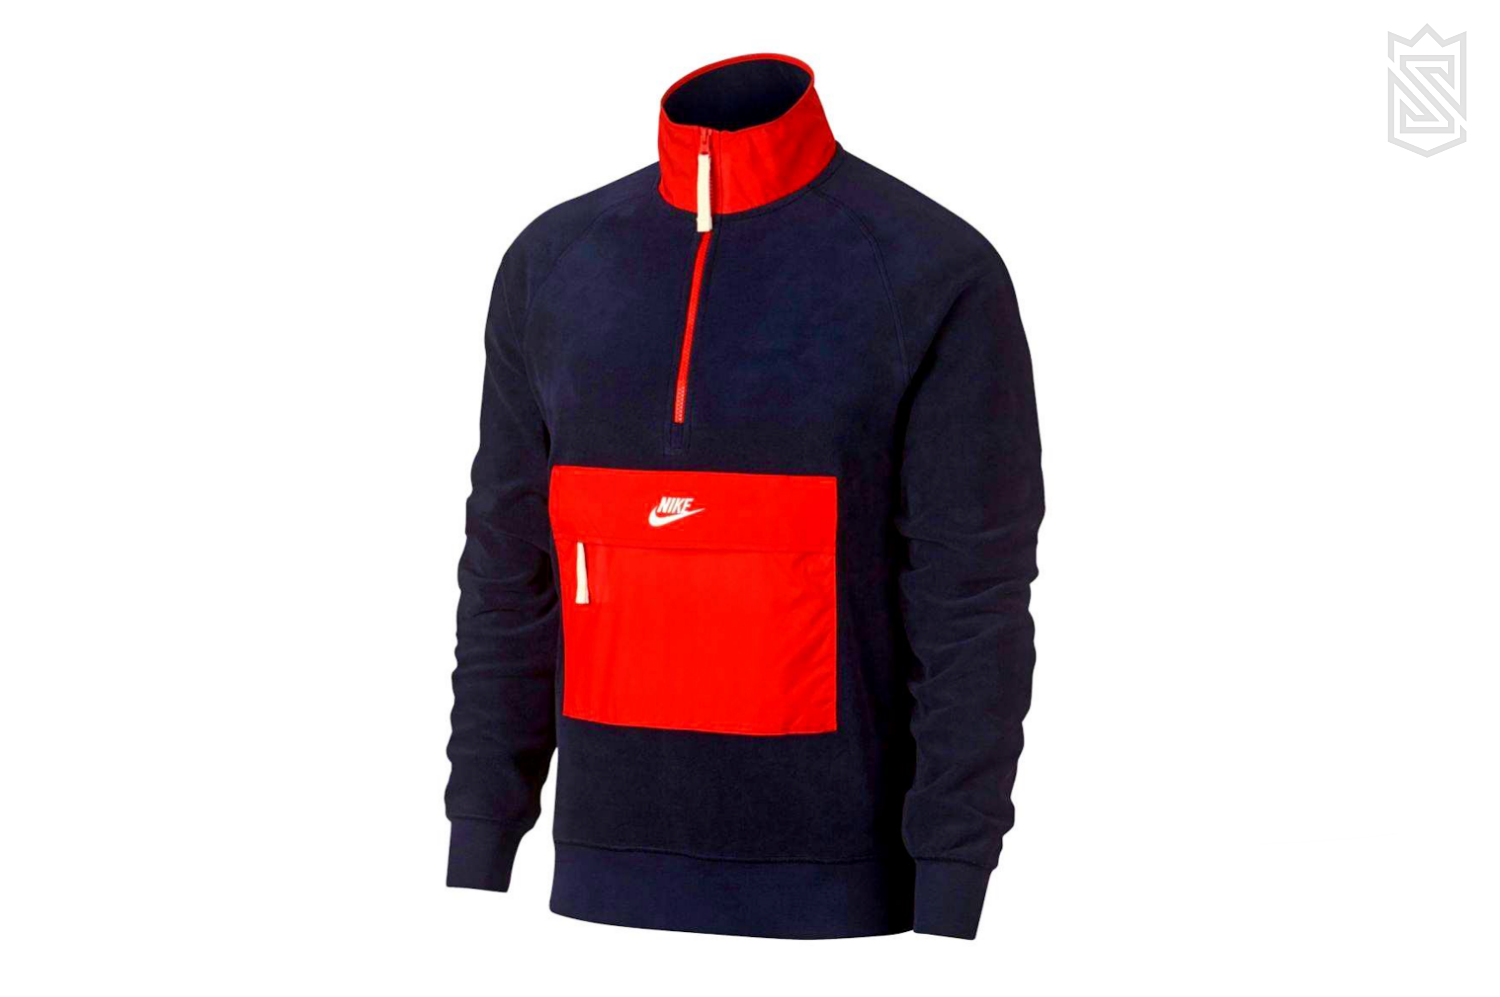 Sportswear Fleece Zip Sweater - Schrittmacher Shop